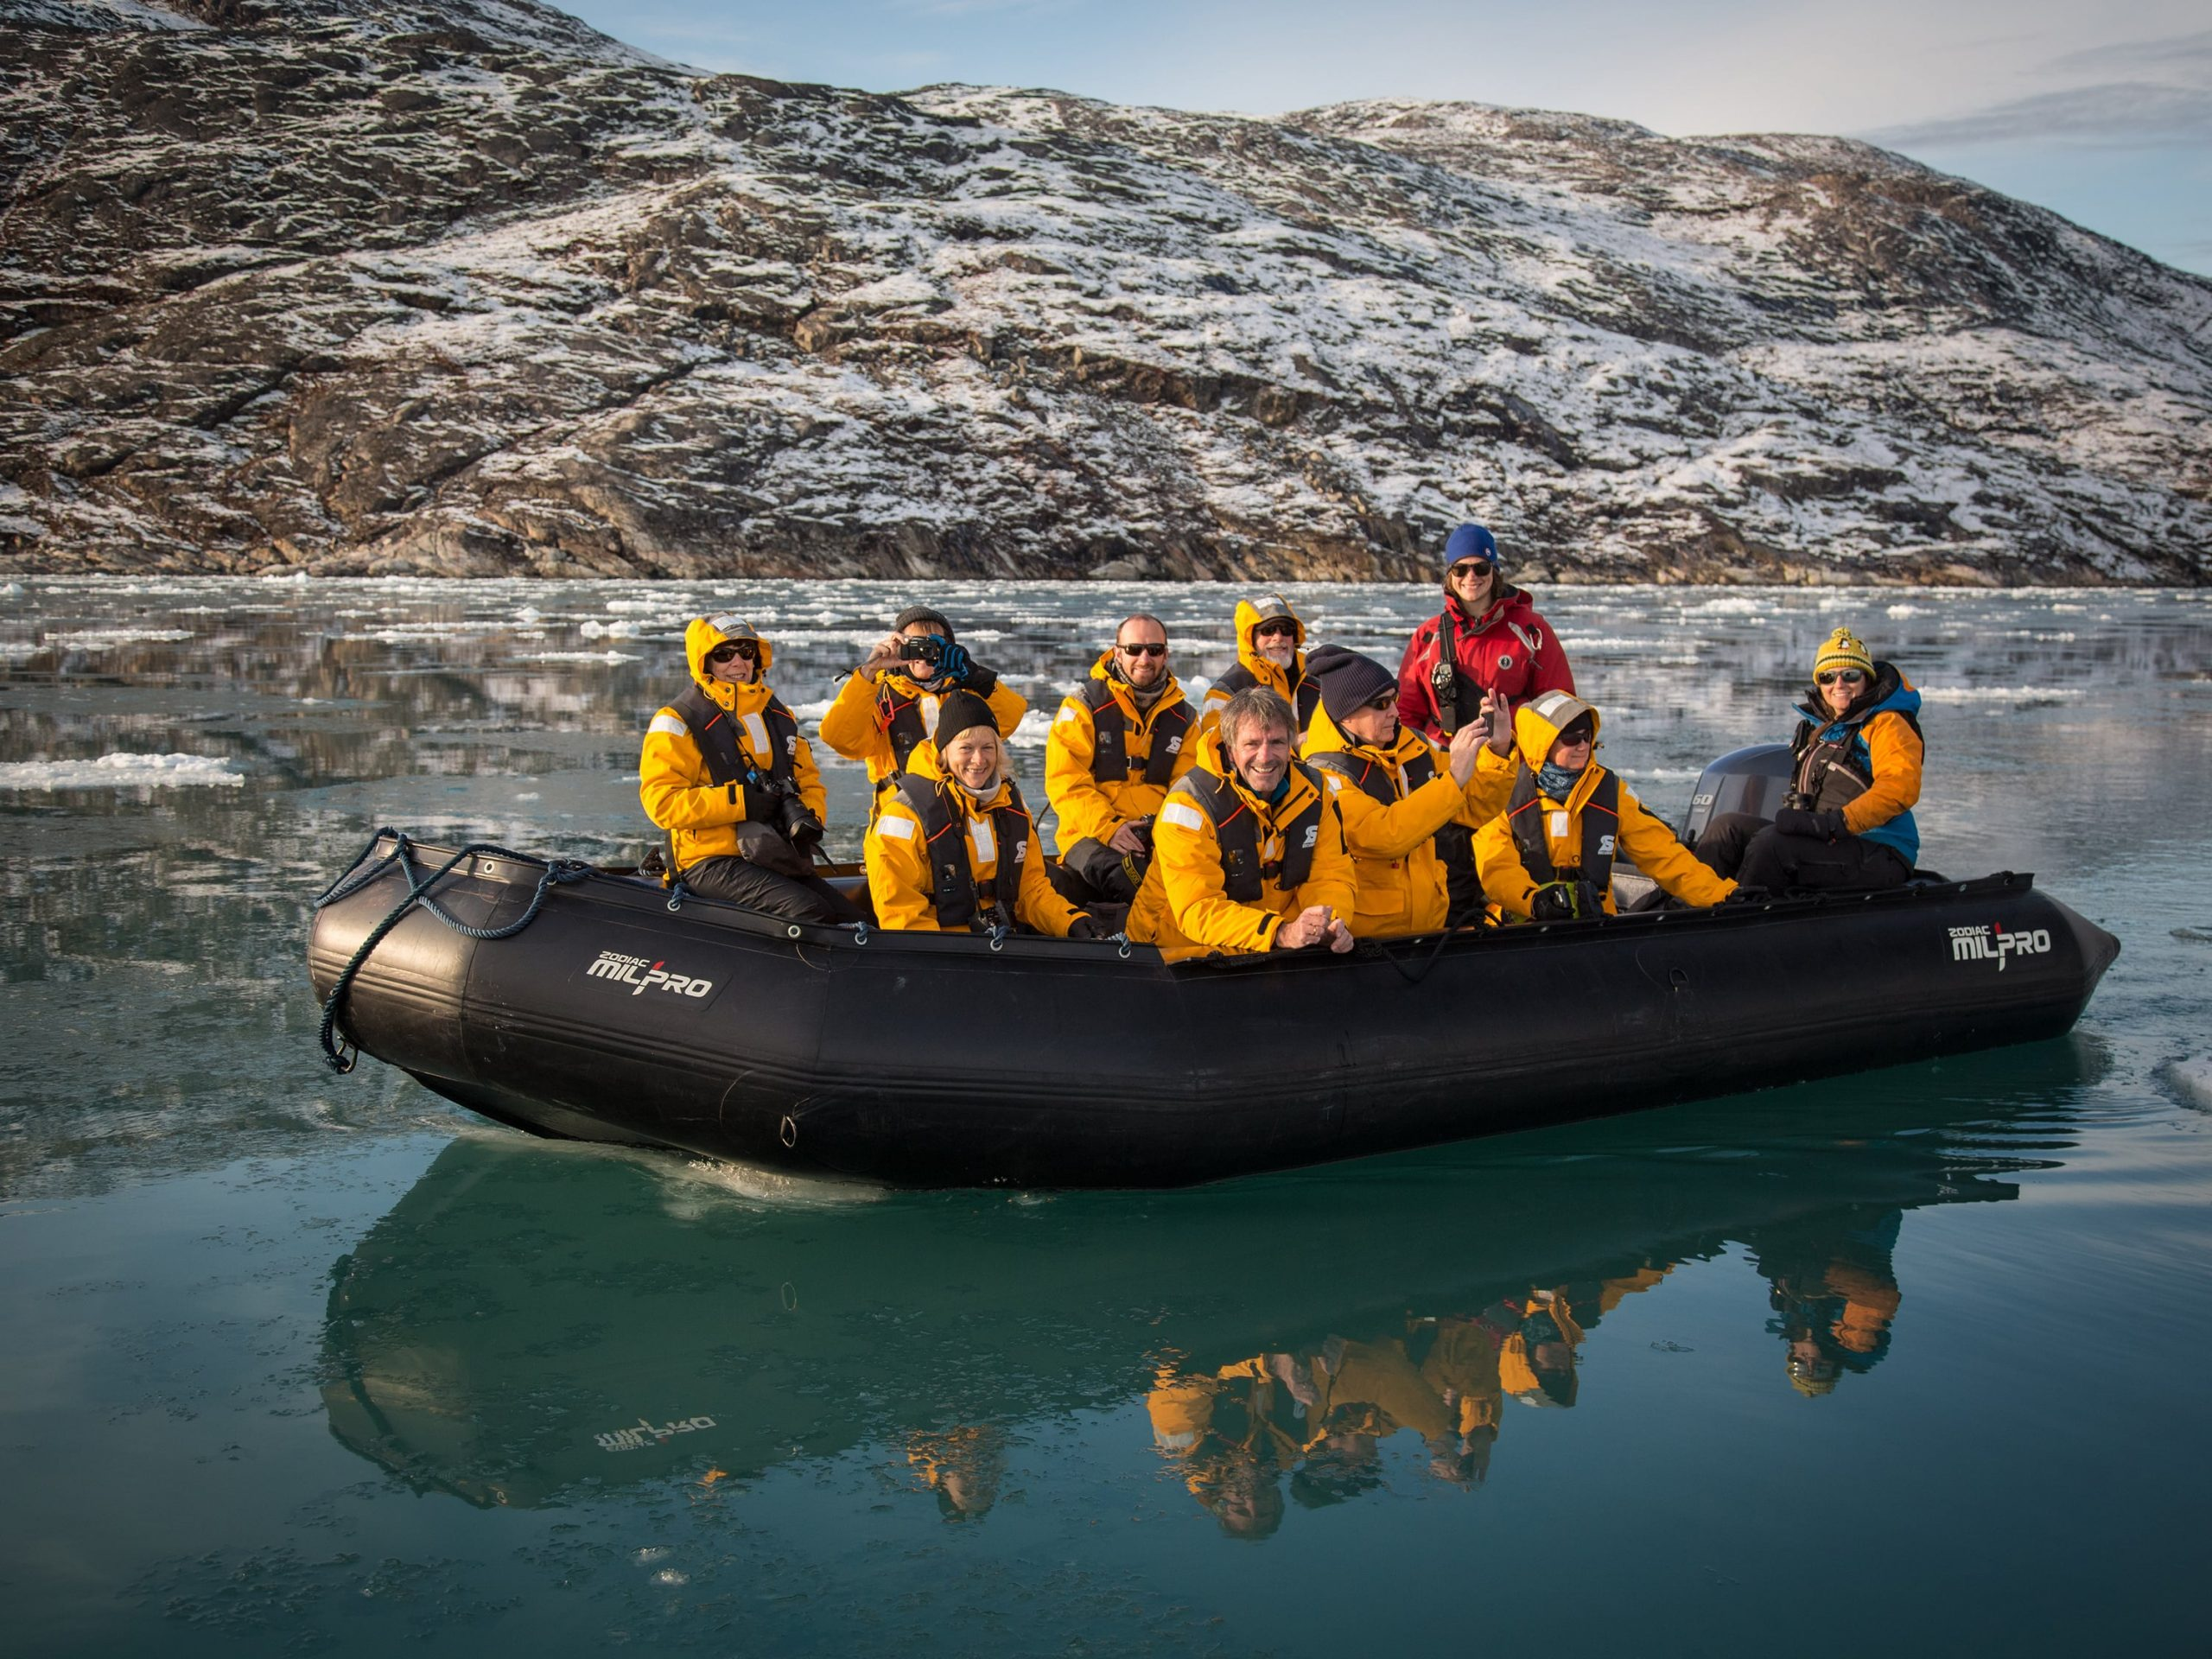 quark-expeditions_greenland-adventure_francoise_gervais_zodiac_eqip_sermia_west_greenland_credit_acaciajohnson-1-min